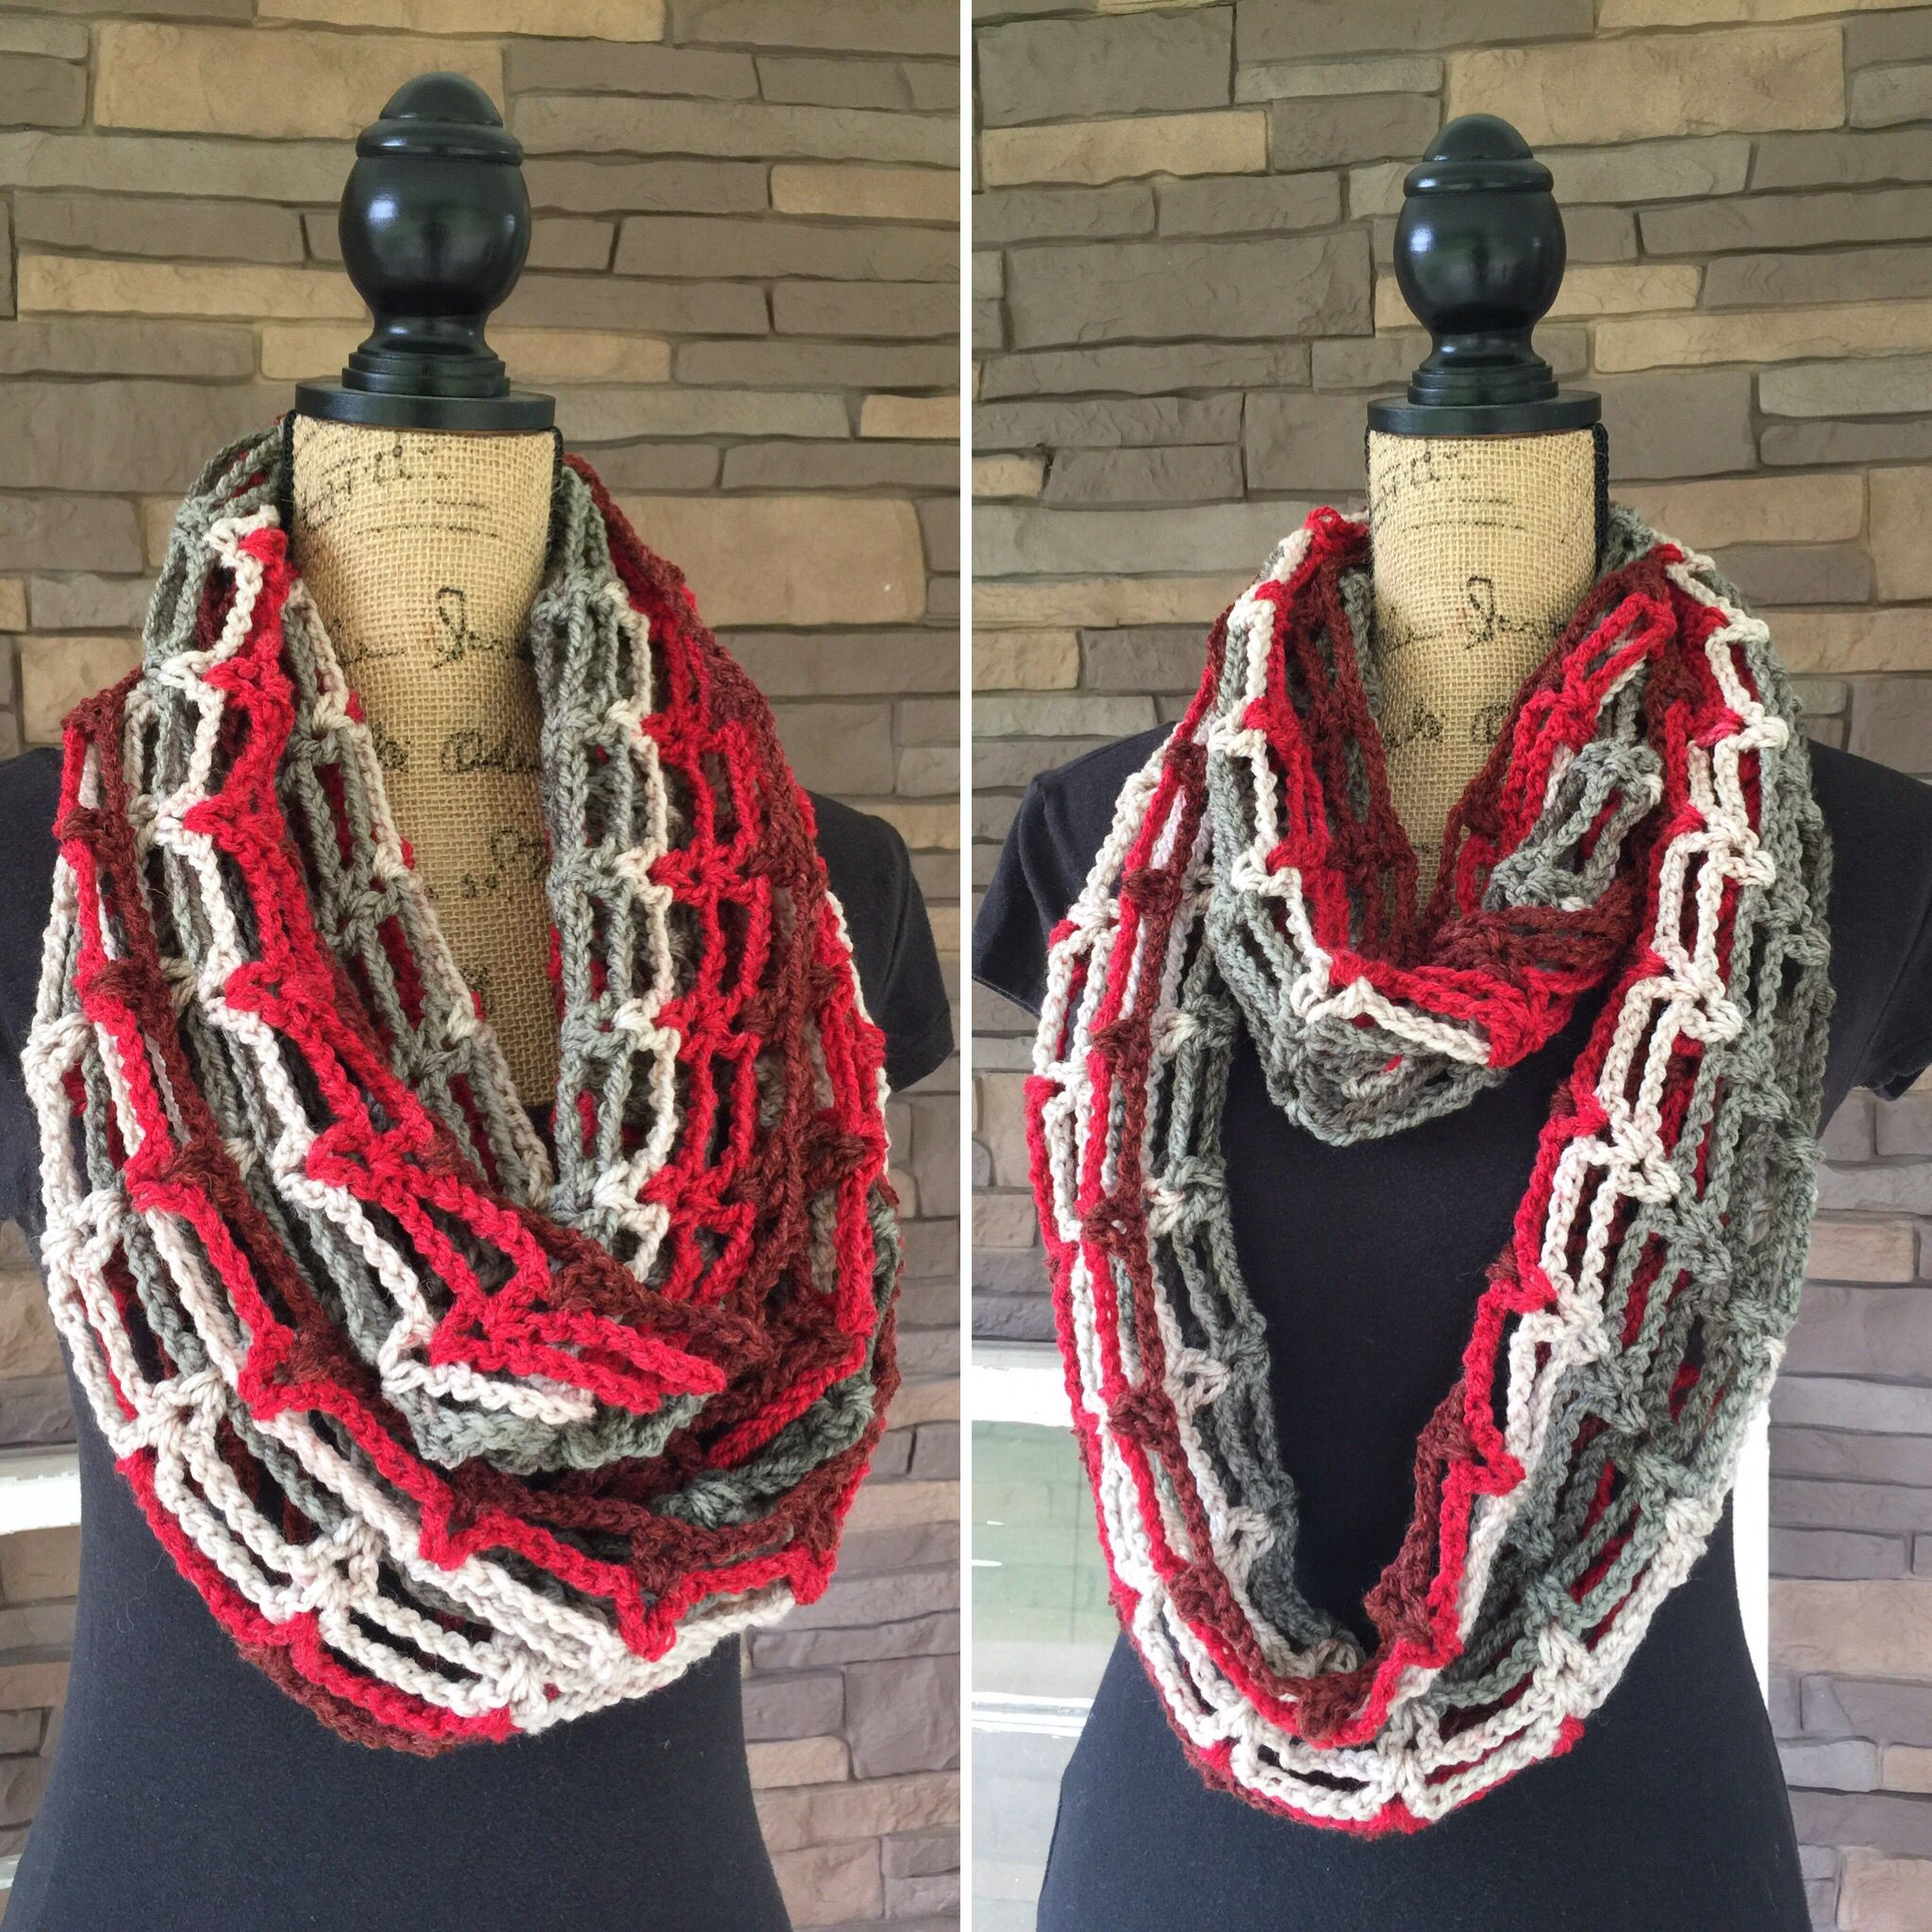 Red Velvet infinity scarf made with Caron Cake yarn. Love these colors. Go by and like Farmhouse Rustic Decor on Facebook